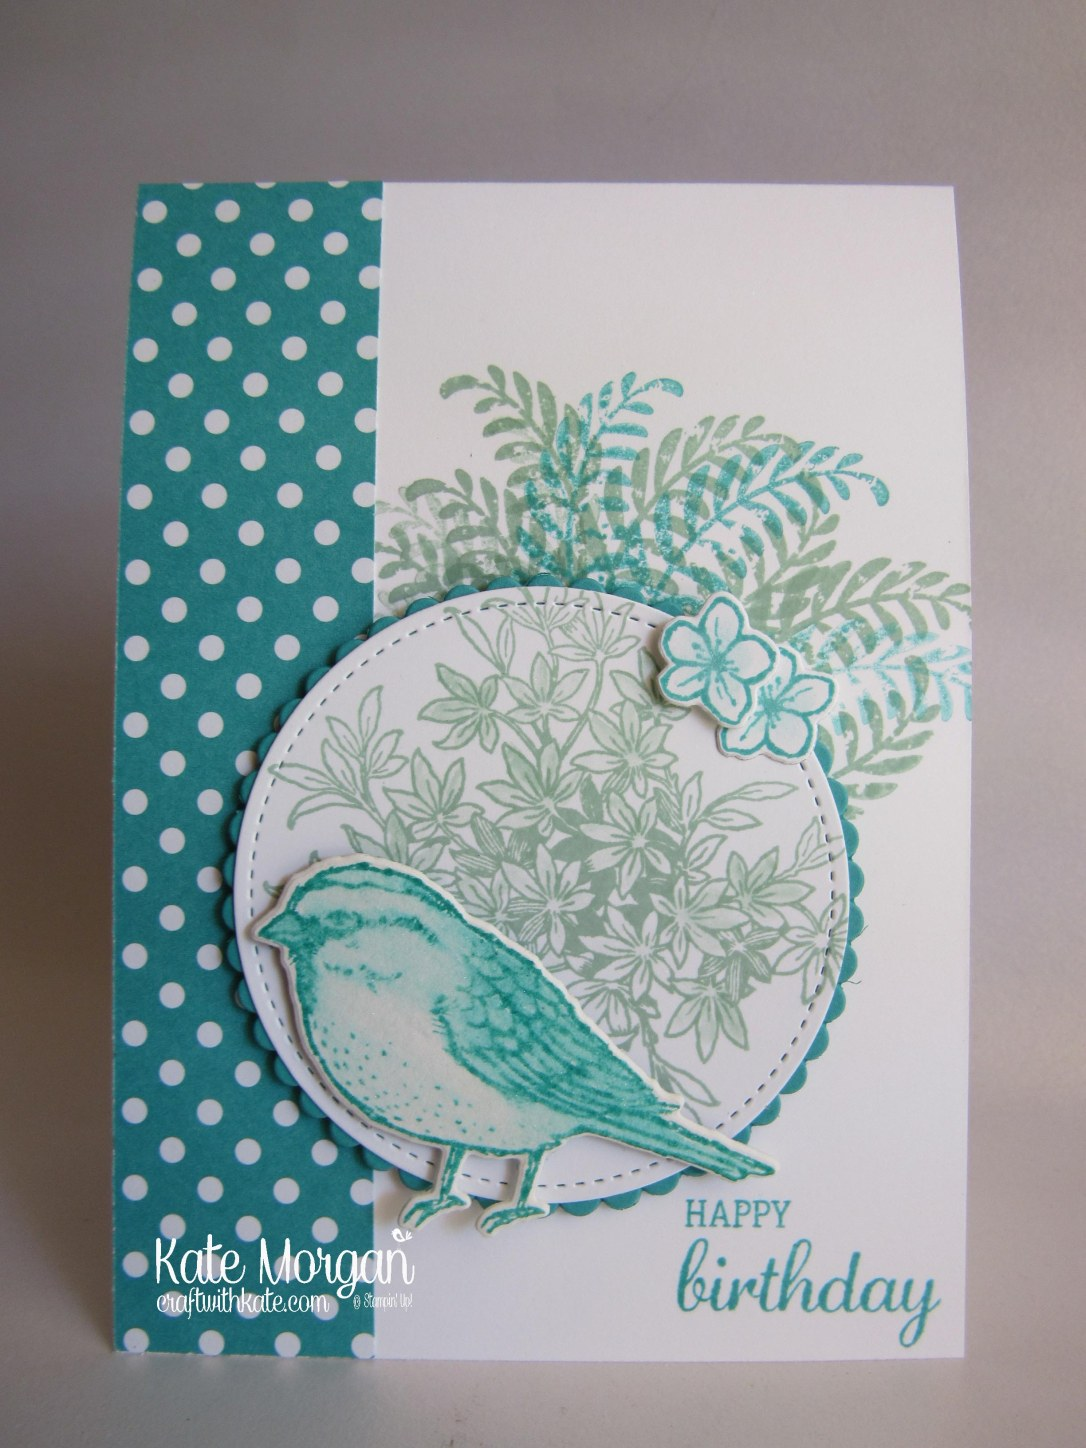 happy-birthday-using-stampin-ups-awesomely-artistic-best-birds-layering-circles-framelits-by-kate-morgan-independent-demonstrator-melbourne-front